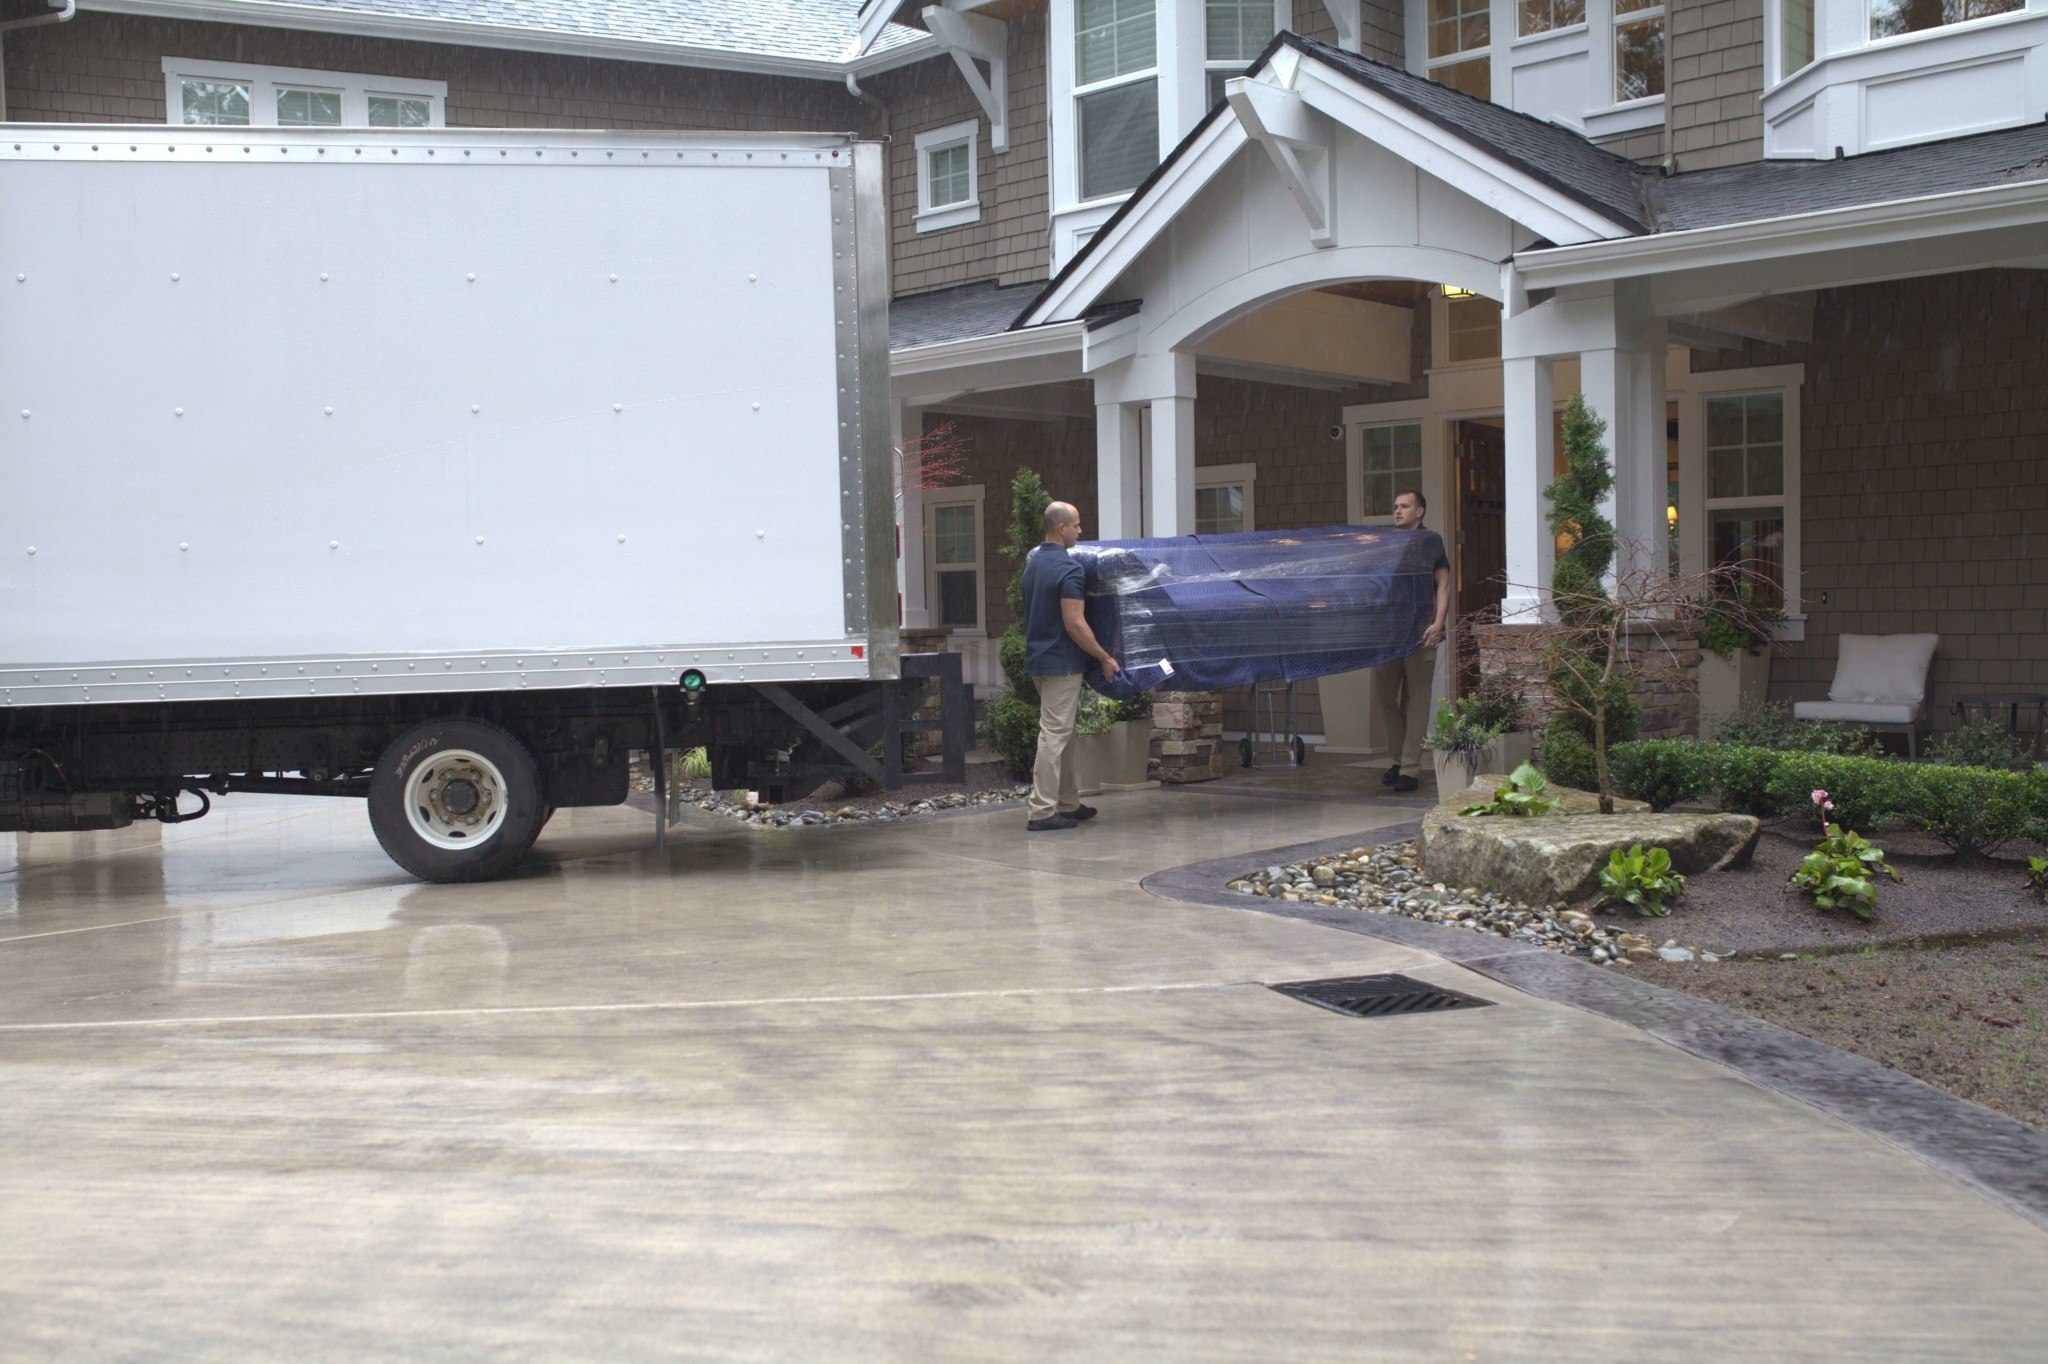 Shoreline movers